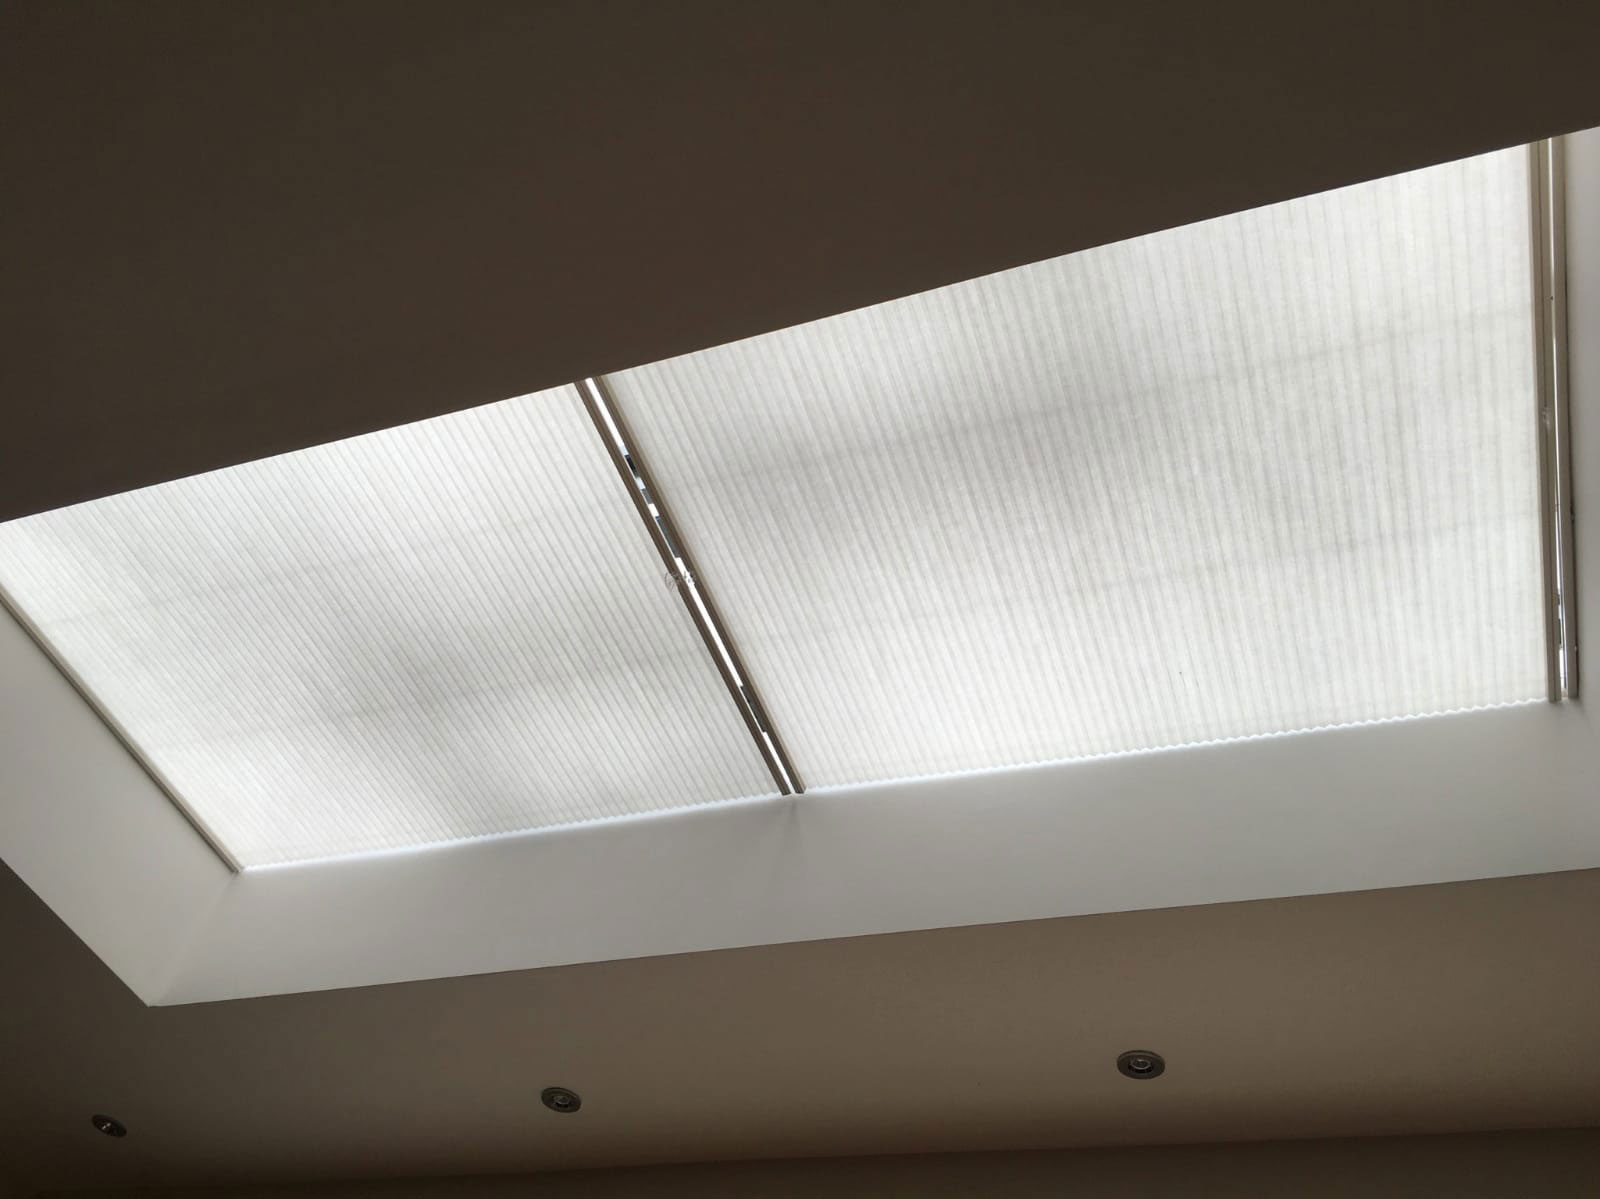 cellular-skylight-blinds-made-to-measure